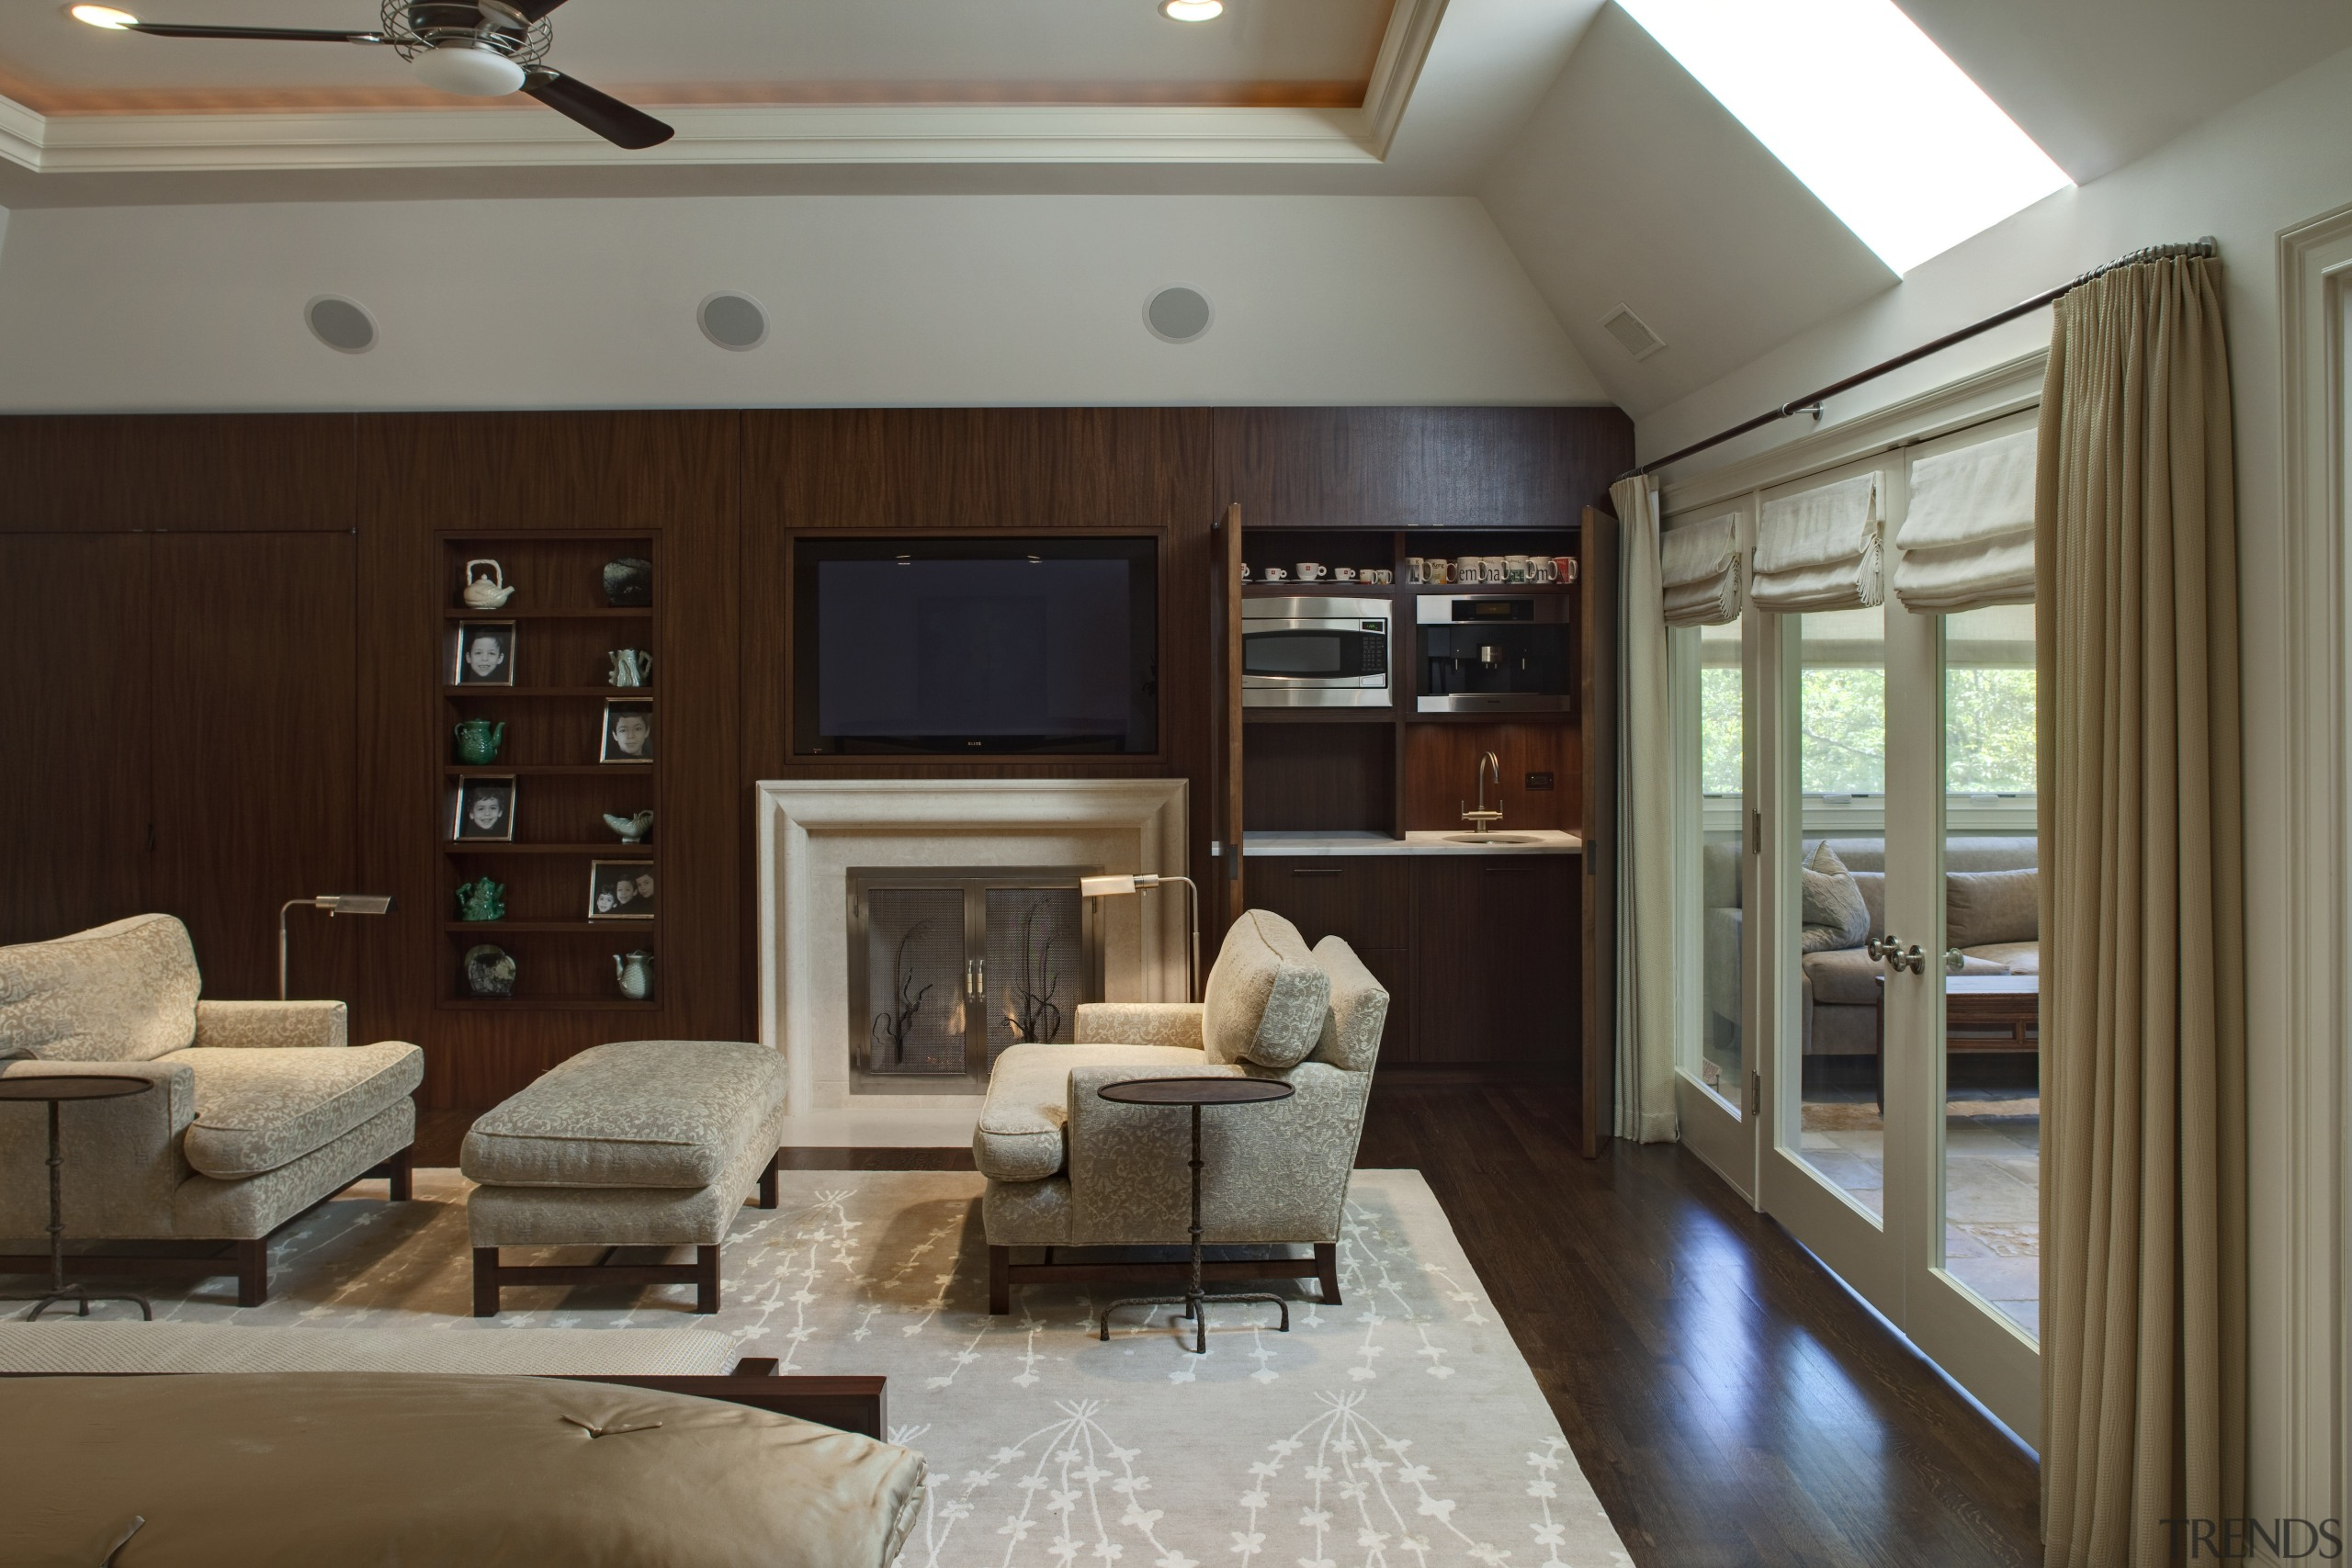 View of master bedroom with porch f... - Gallery - 8 | Trends